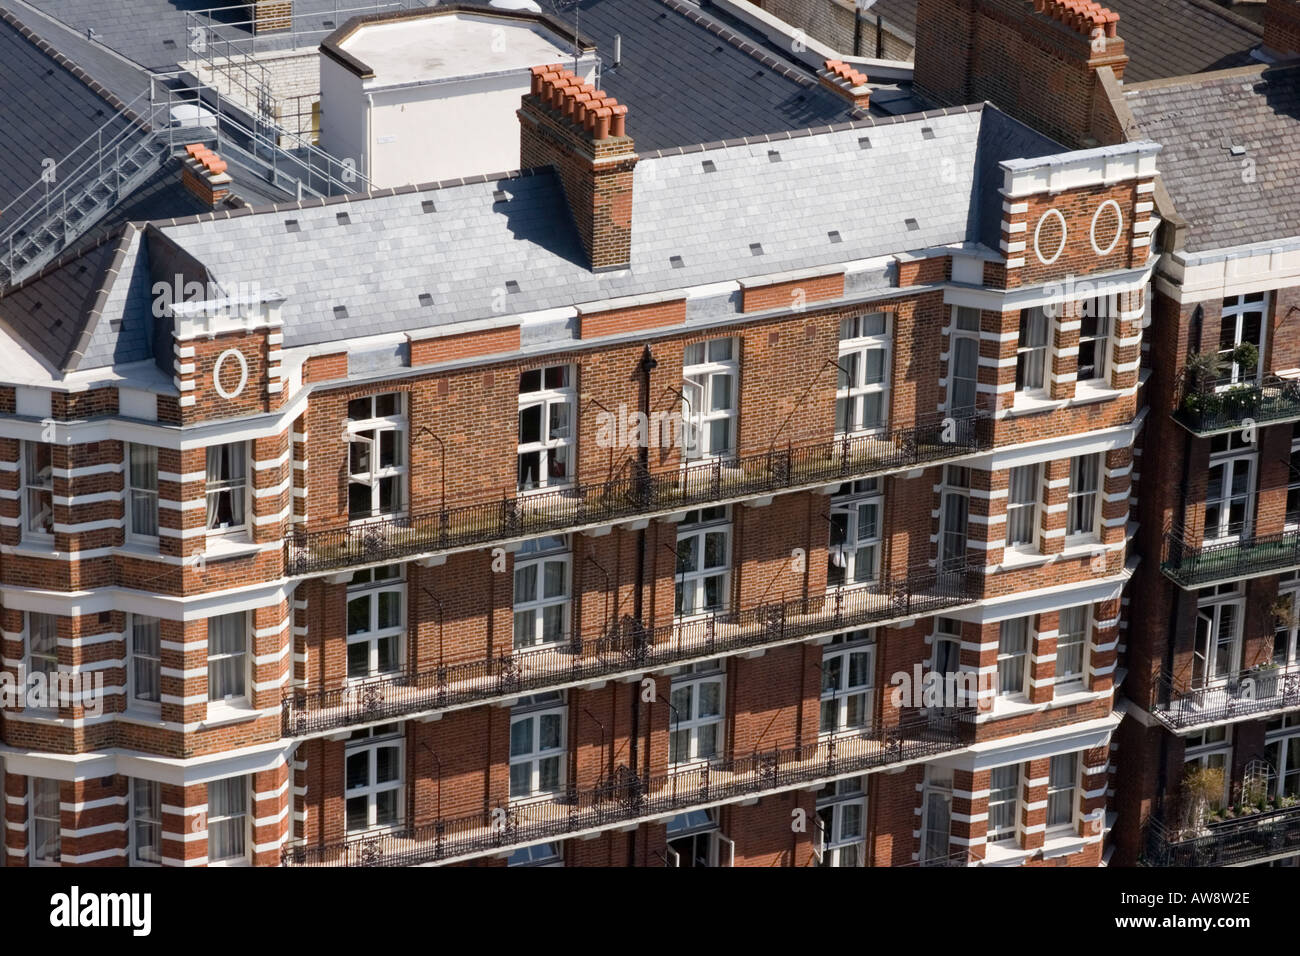 Aerial View Of Brick Victorian Apartment Building In Victoria London UK,  Showing Facade, Chimneys And Balconies